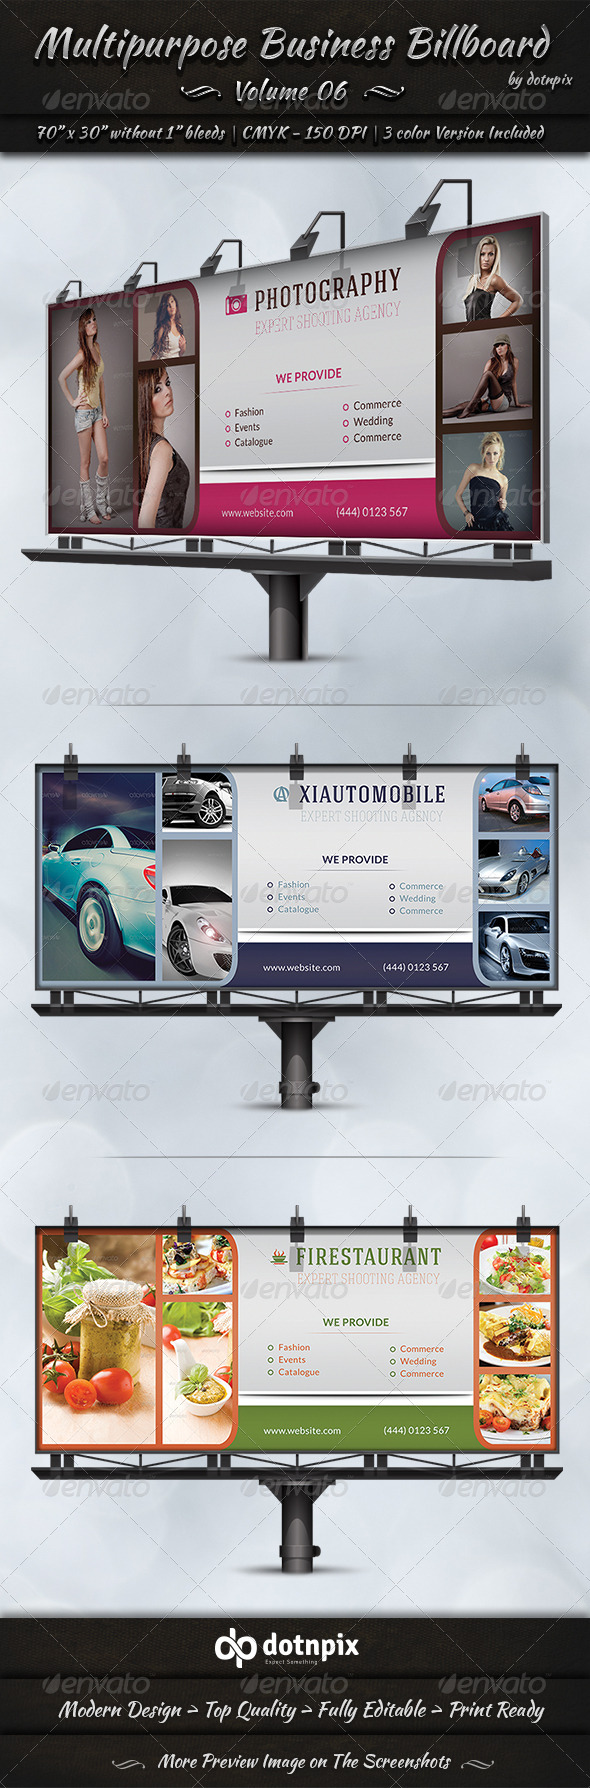 GraphicRiver Multipurpose Business Billboard Volume 6 7791243